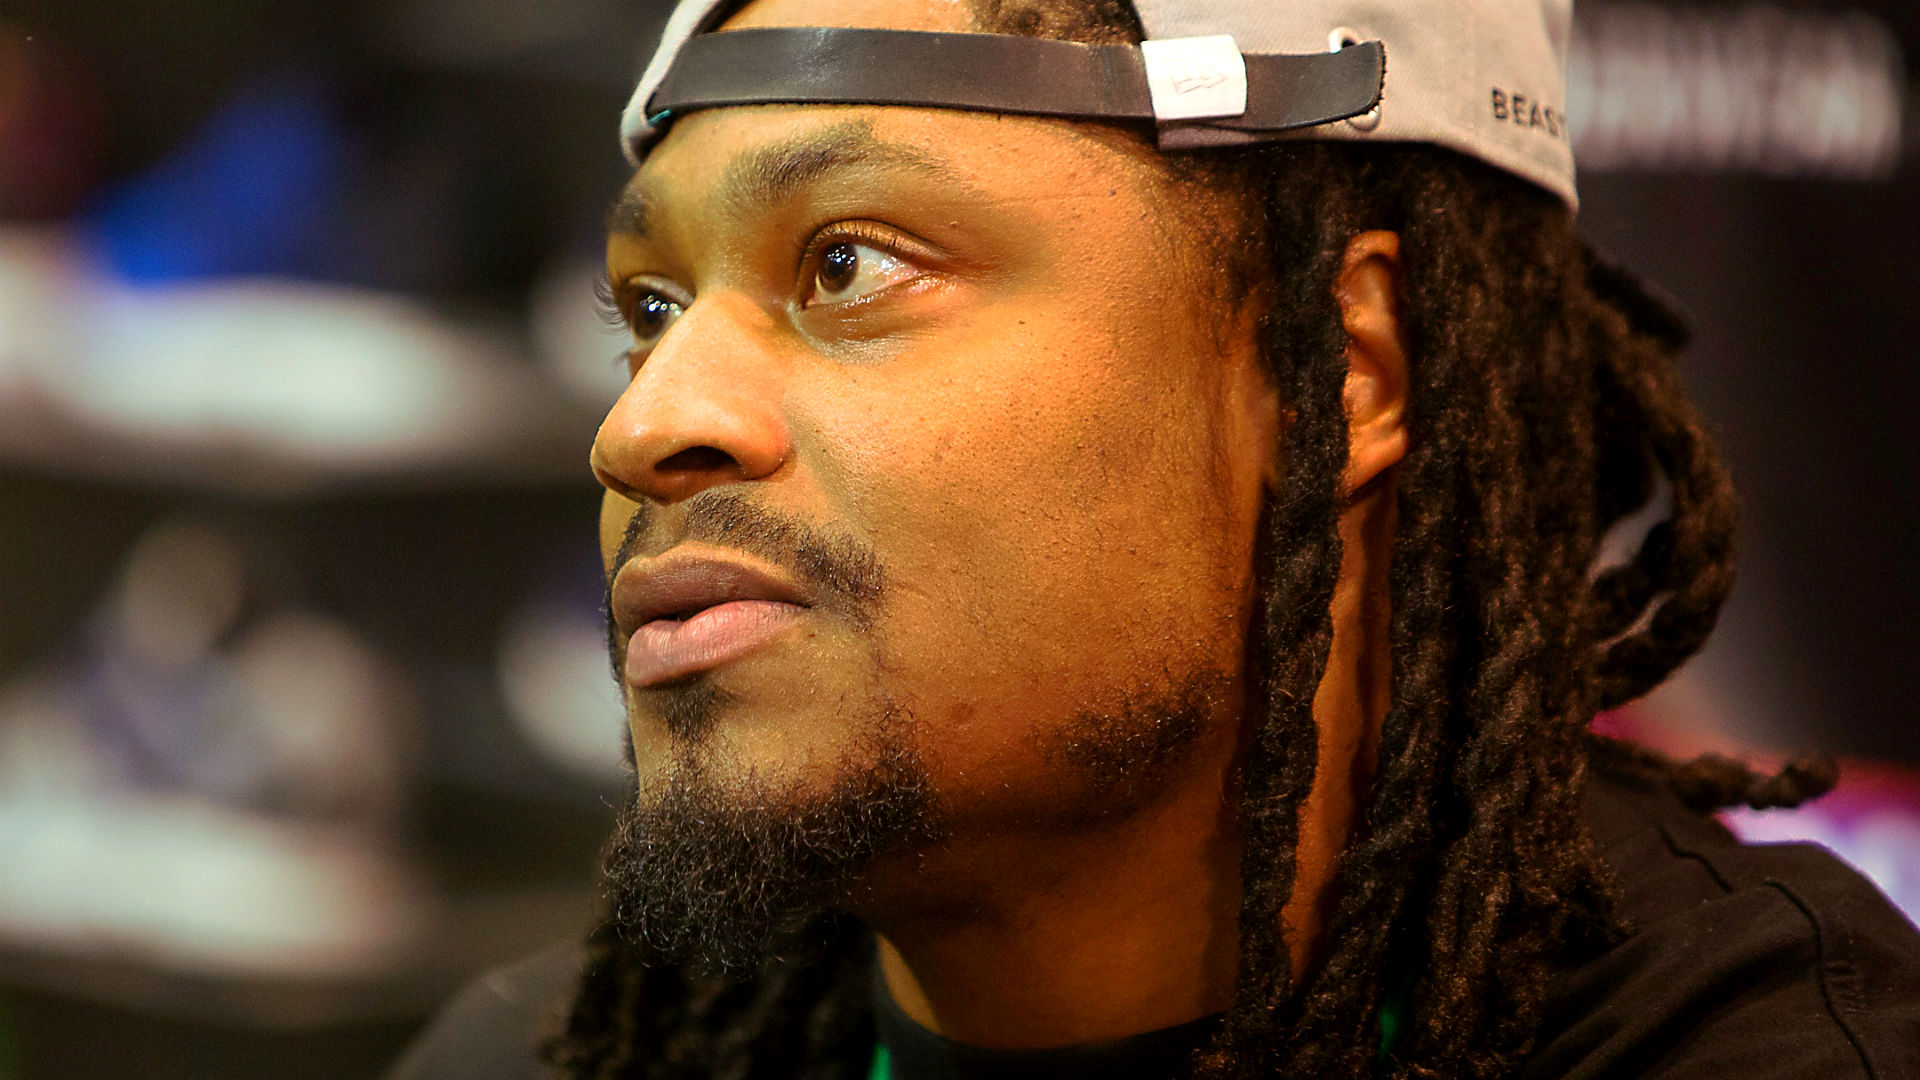 Call of Duty Royale tournament groups, bracket, rules as Marshawn Lynch & other stars play for charity